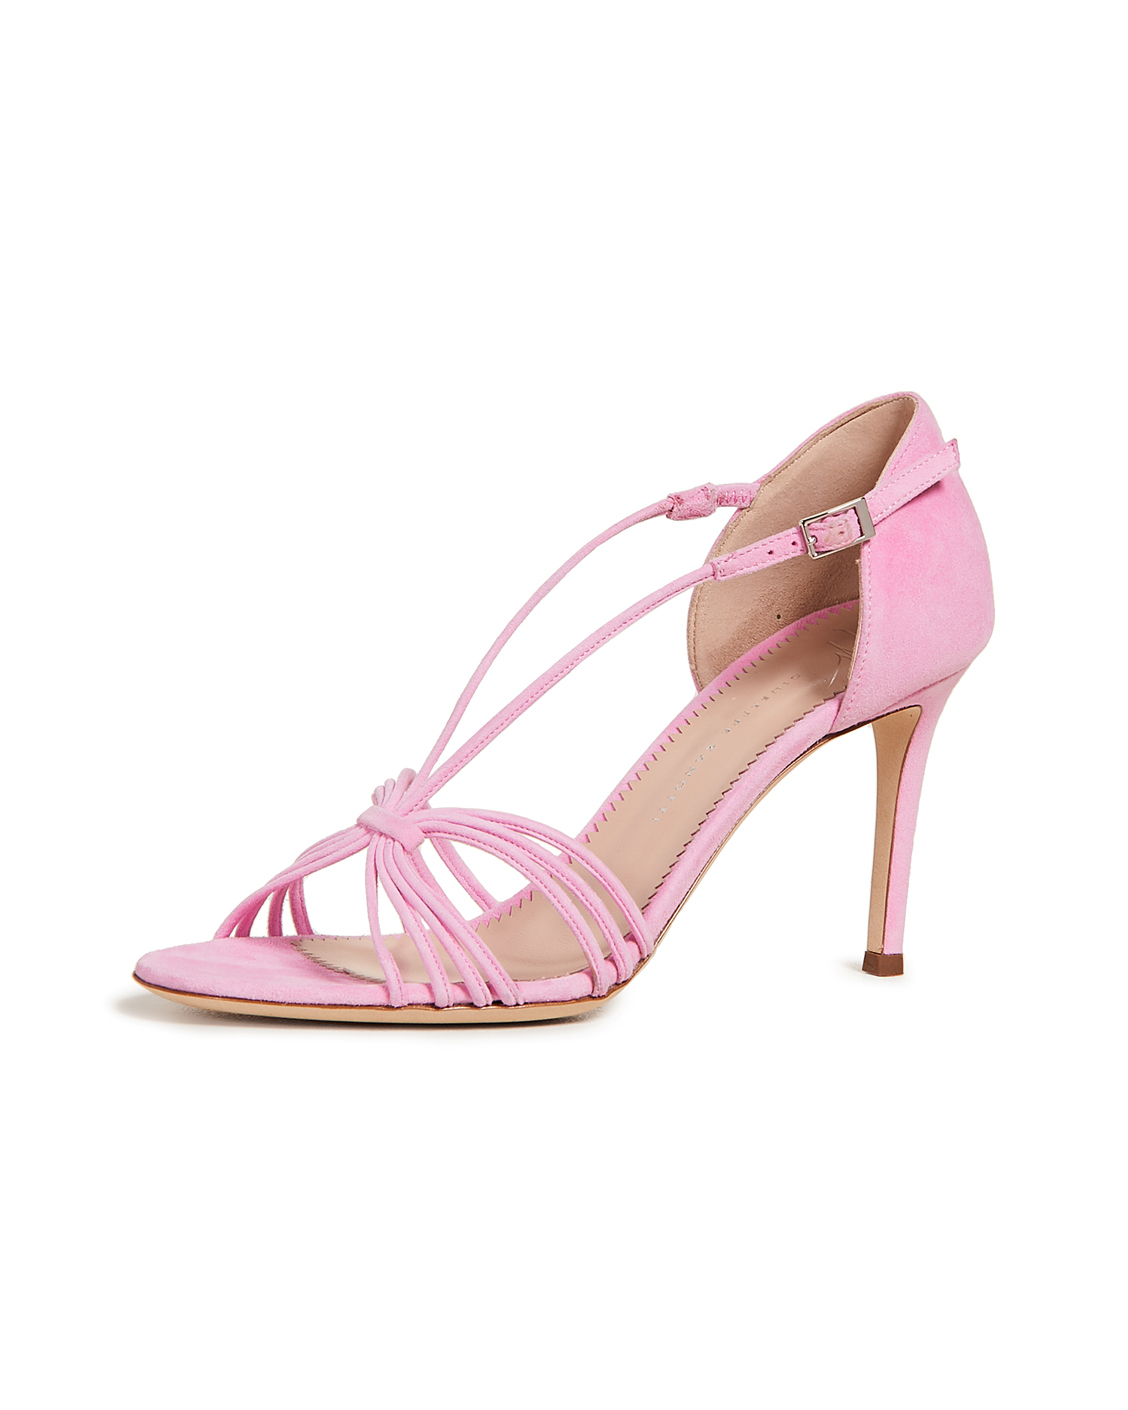 pink strappy high-heel sandals